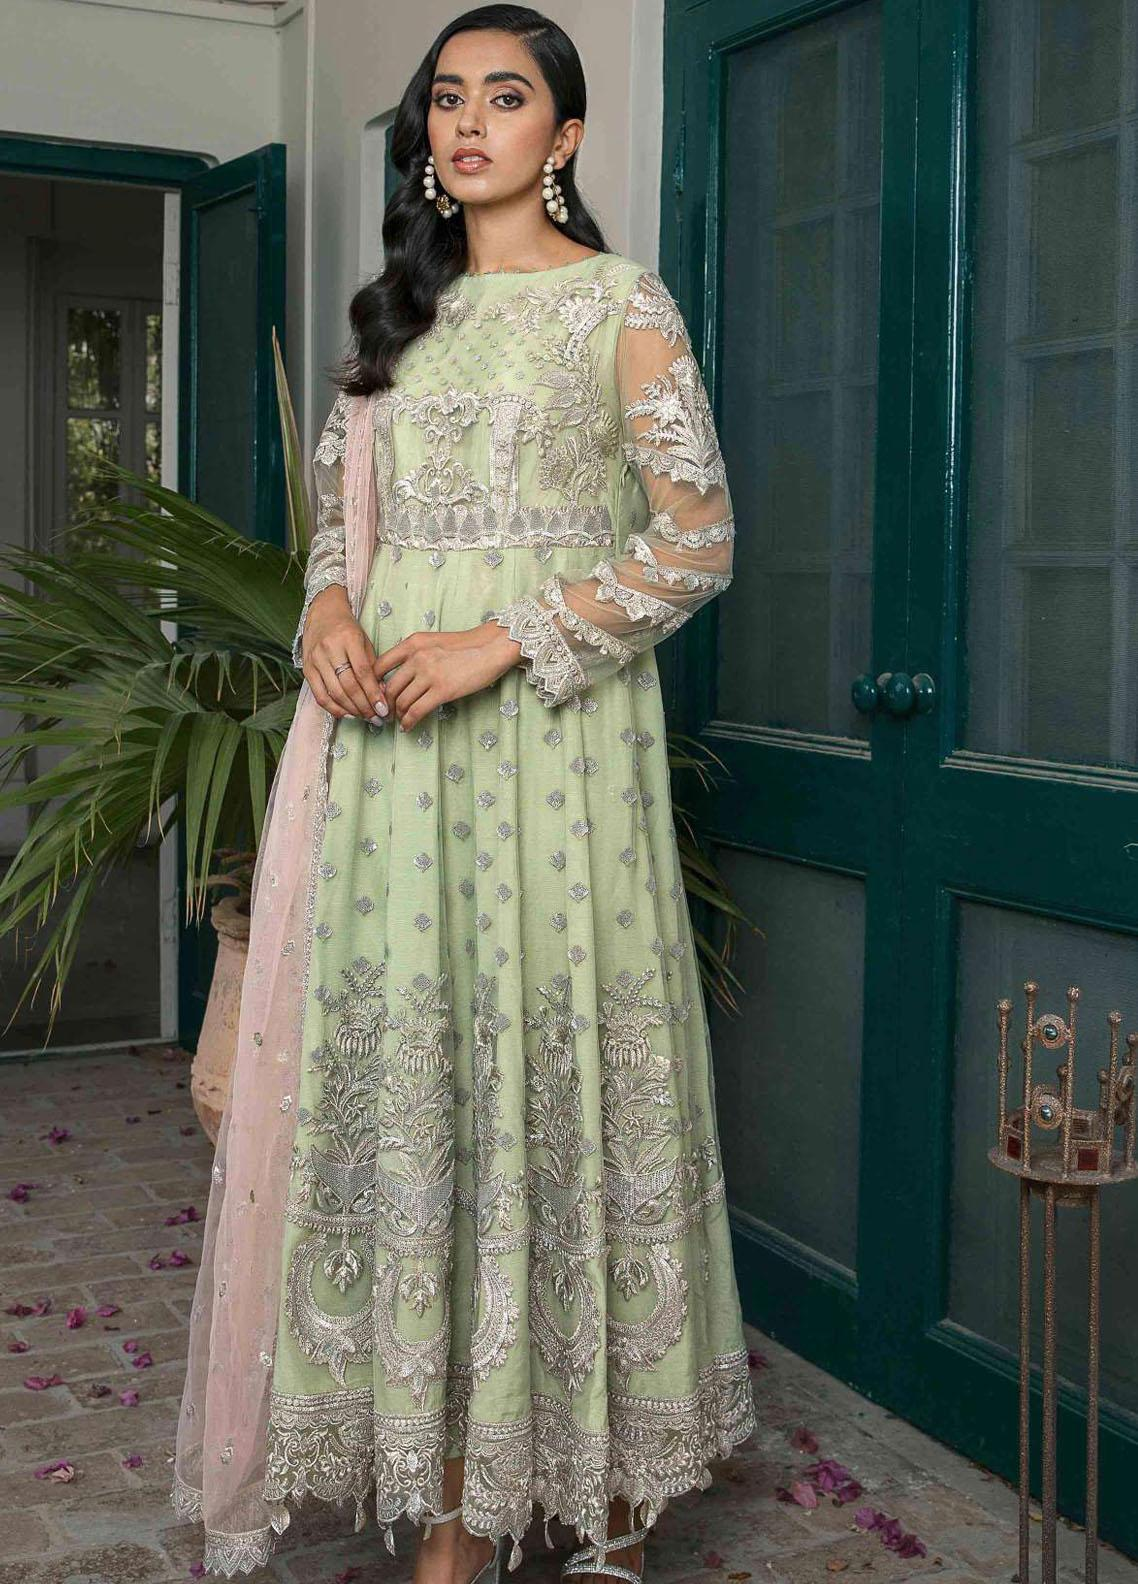 Suraj Garh by Imrozia Premium Embroidered Net Suit Unstitched 3 Piece I-143 BANO – Wedding Collection